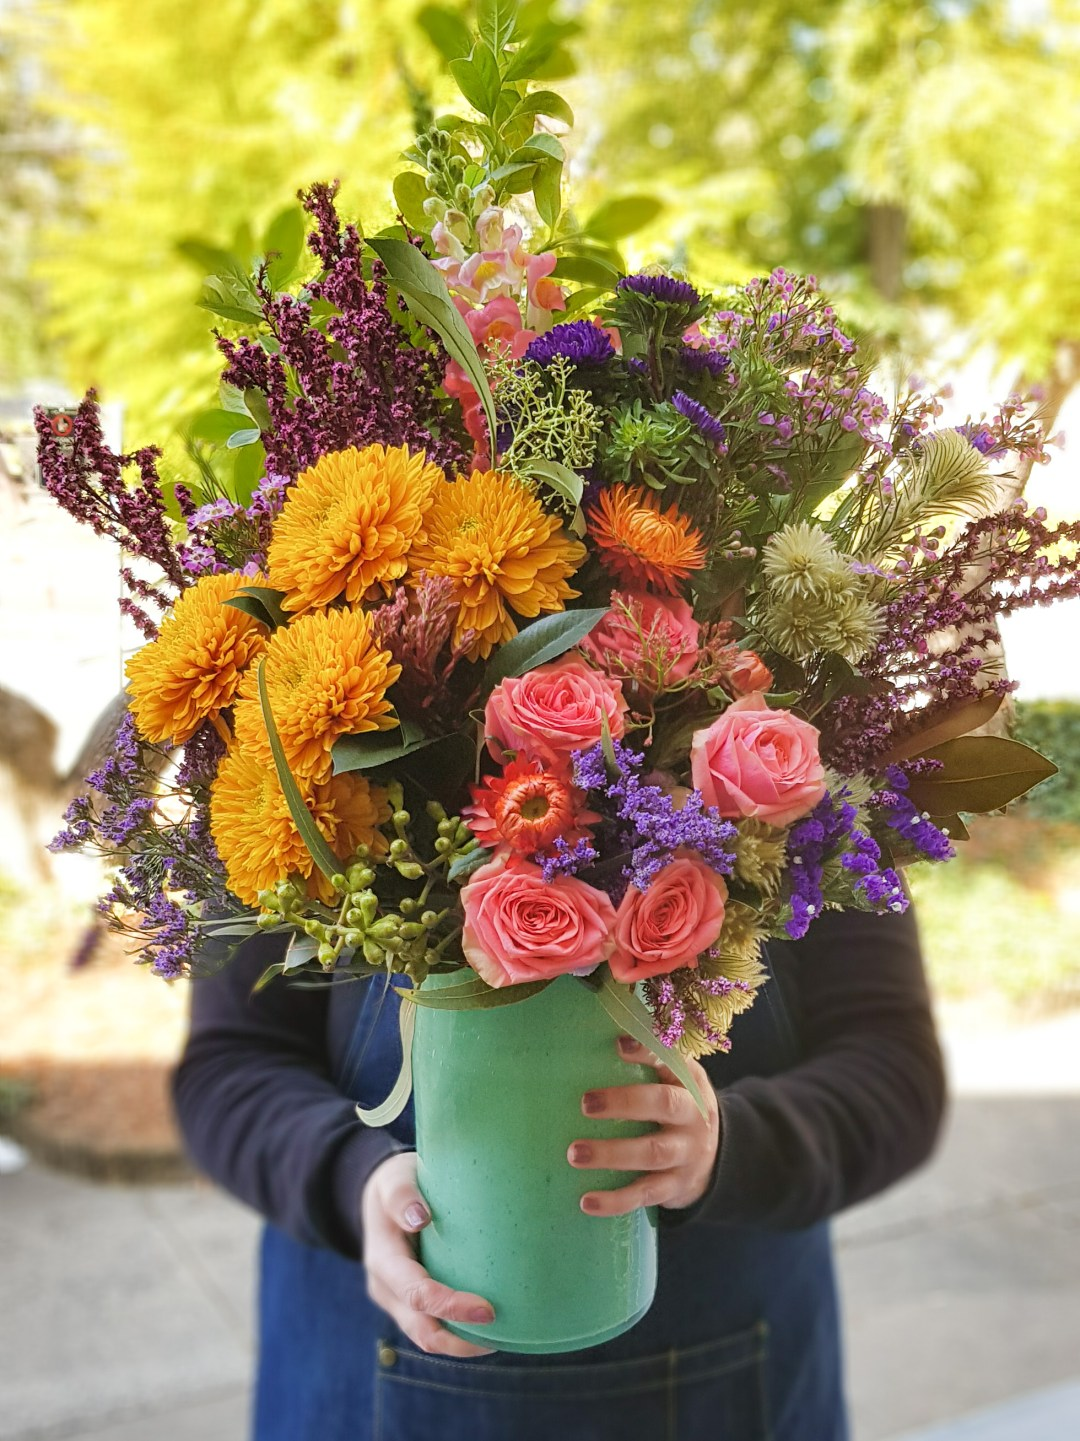 Lush and colourful fresh flower bouquet in a green vase from Posy & Twin Florist in Telopea, NSW